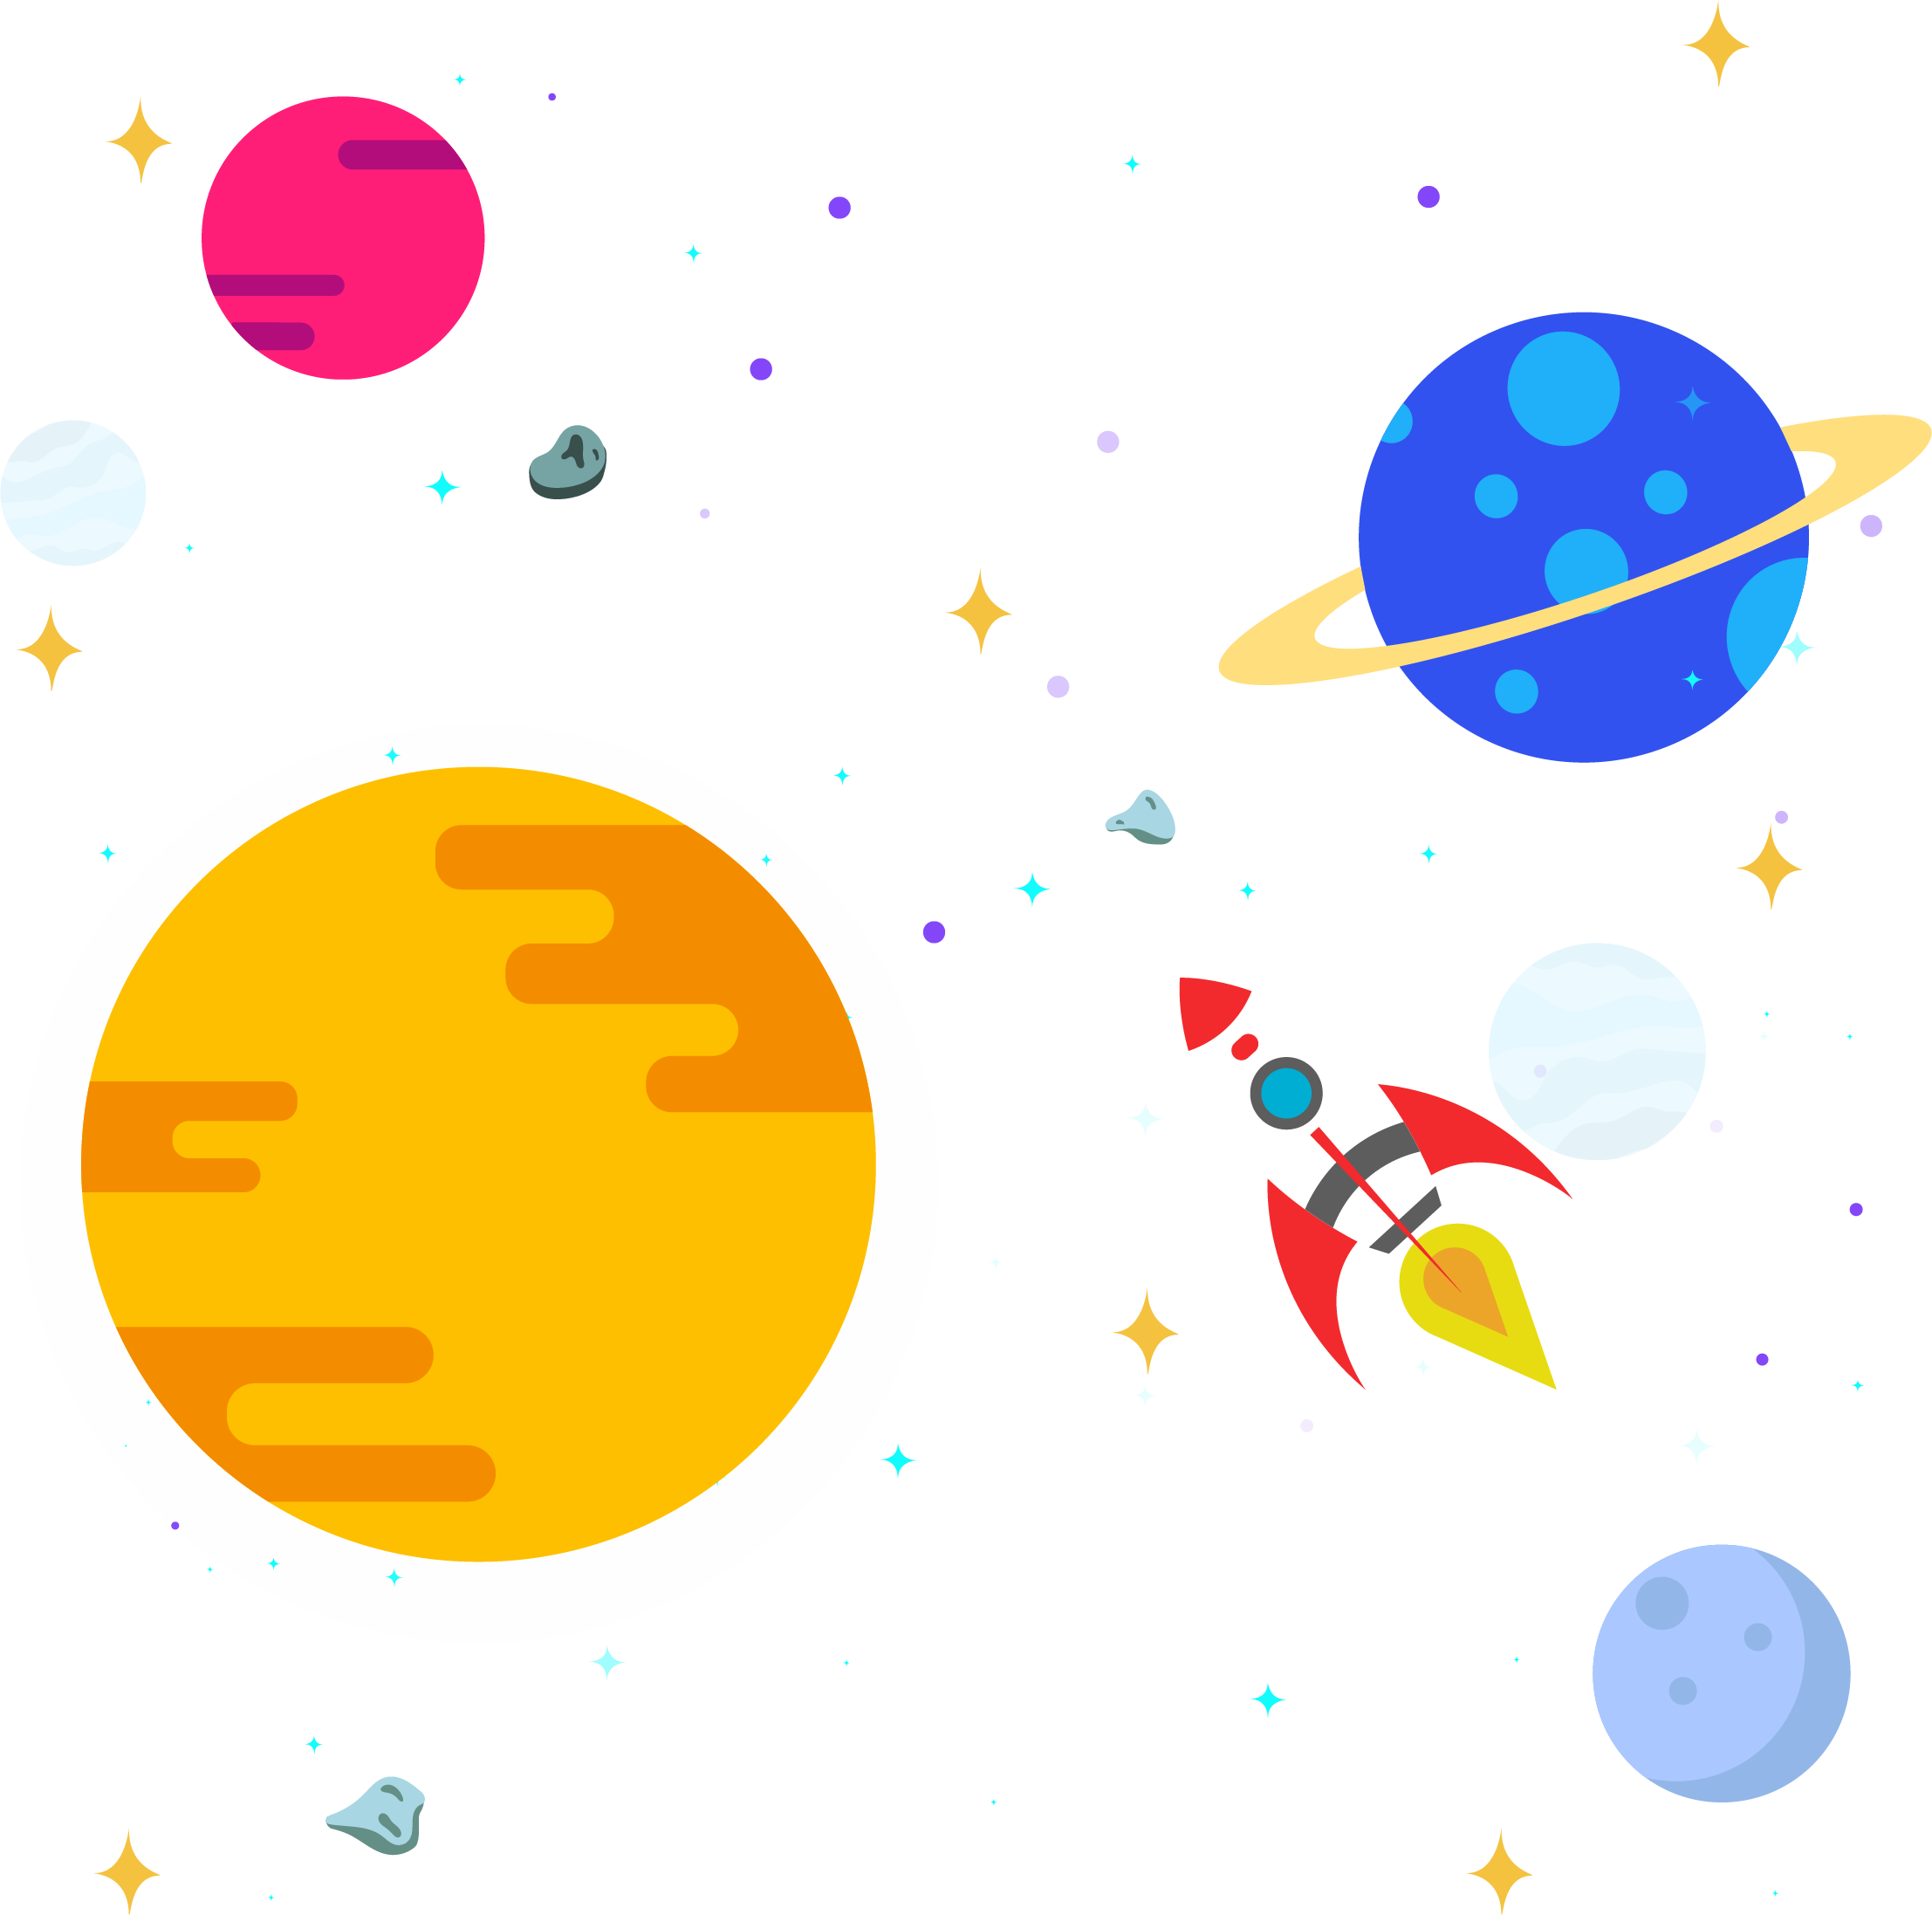 Star in space clipart jpg Outer space Solar System Clip art - Space star rocket 2214*2202 ... jpg